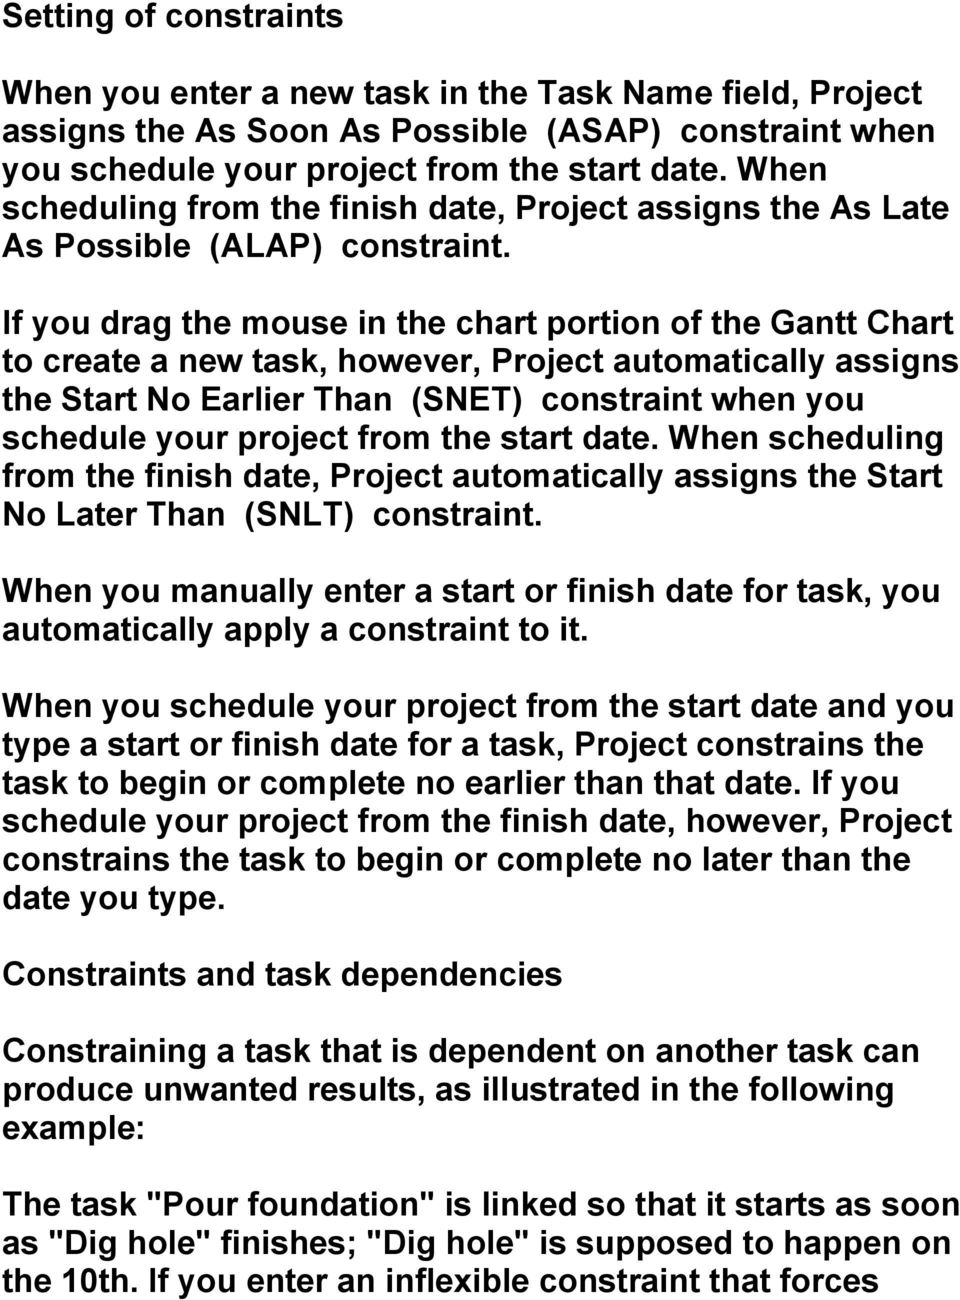 If you drag the mouse in the chart portion of the Gantt Chart to create a new task, however, Project automatically assigns the Start No Earlier Than (SNET) constraint when you schedule your project